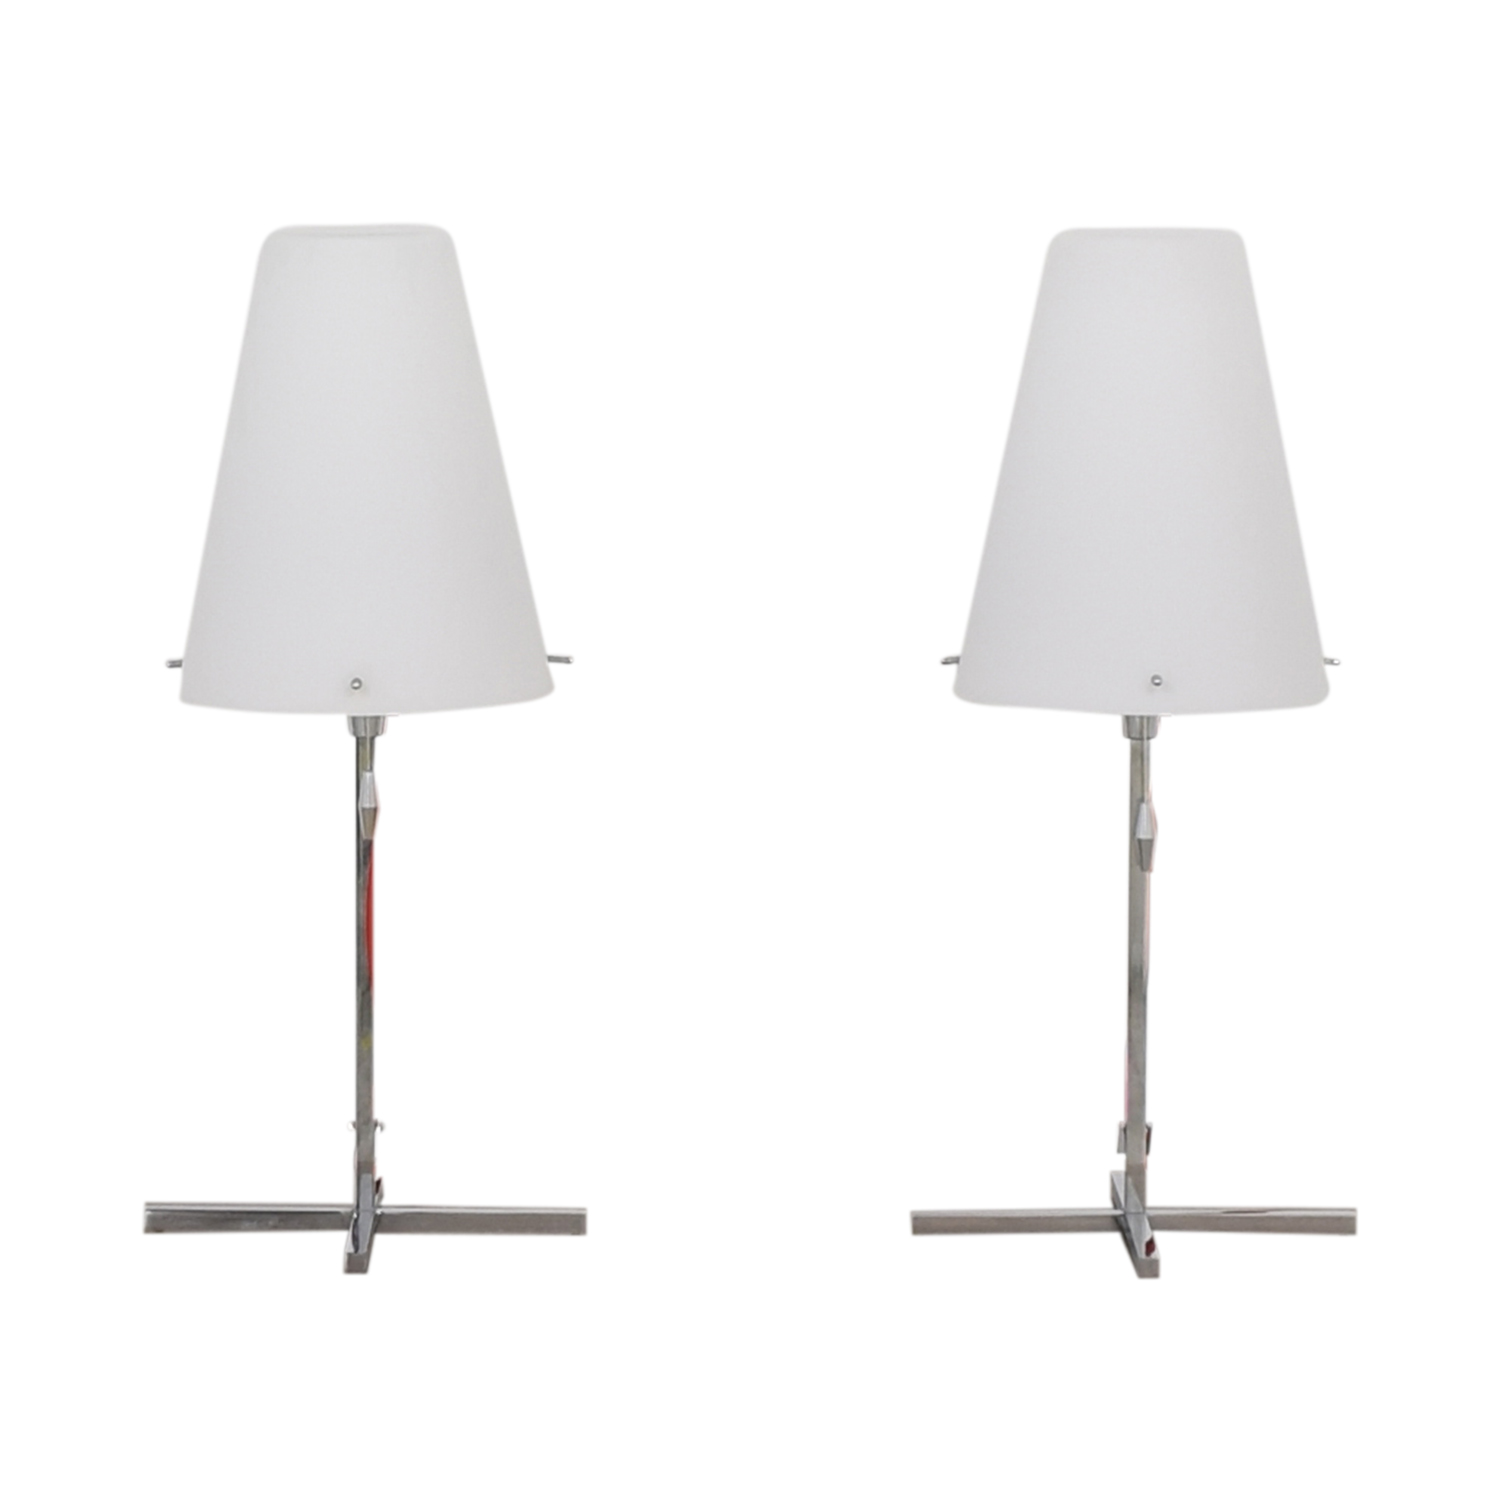 Nemo Nemo Thuban Table Lamps ma